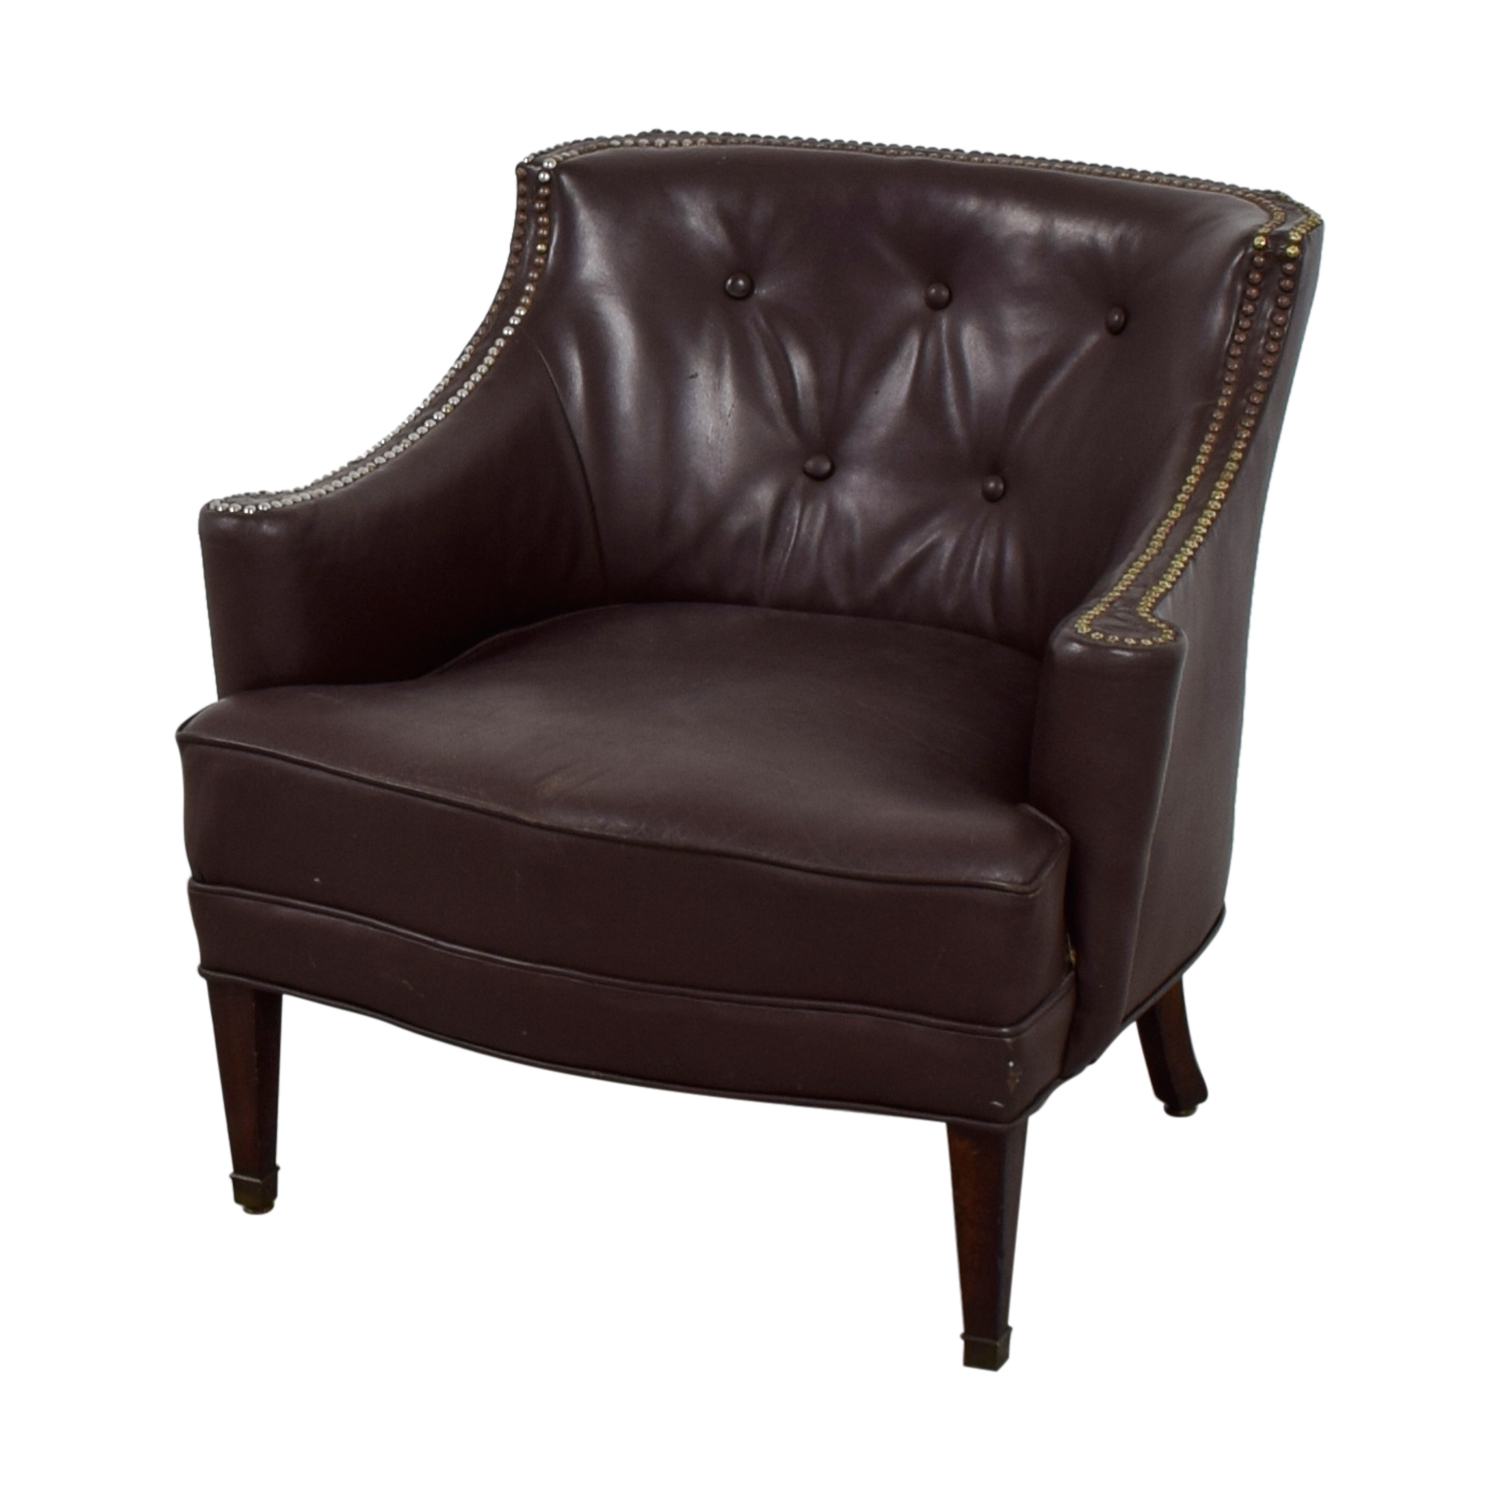 Leather Side Chair 90 Off Pier 1 Imports Pier 1 Imports Brown Leather Side